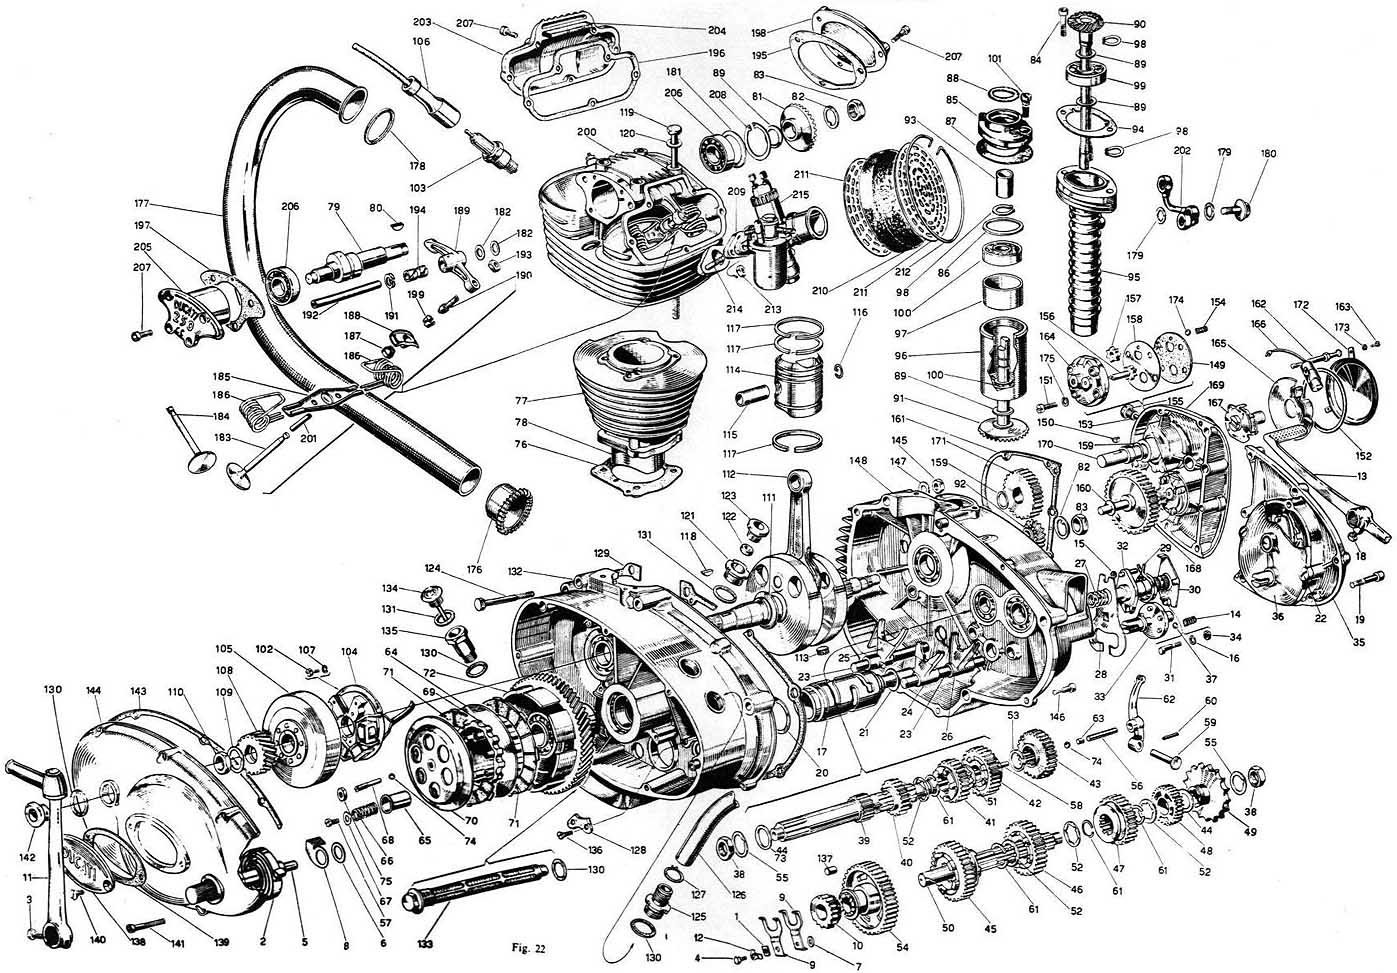 Villiers 2 Stroke Engine Manual Today Guide Trends Sample Cycle Diagram Exploded Of Motorcycle Autos Post Diesel Animation